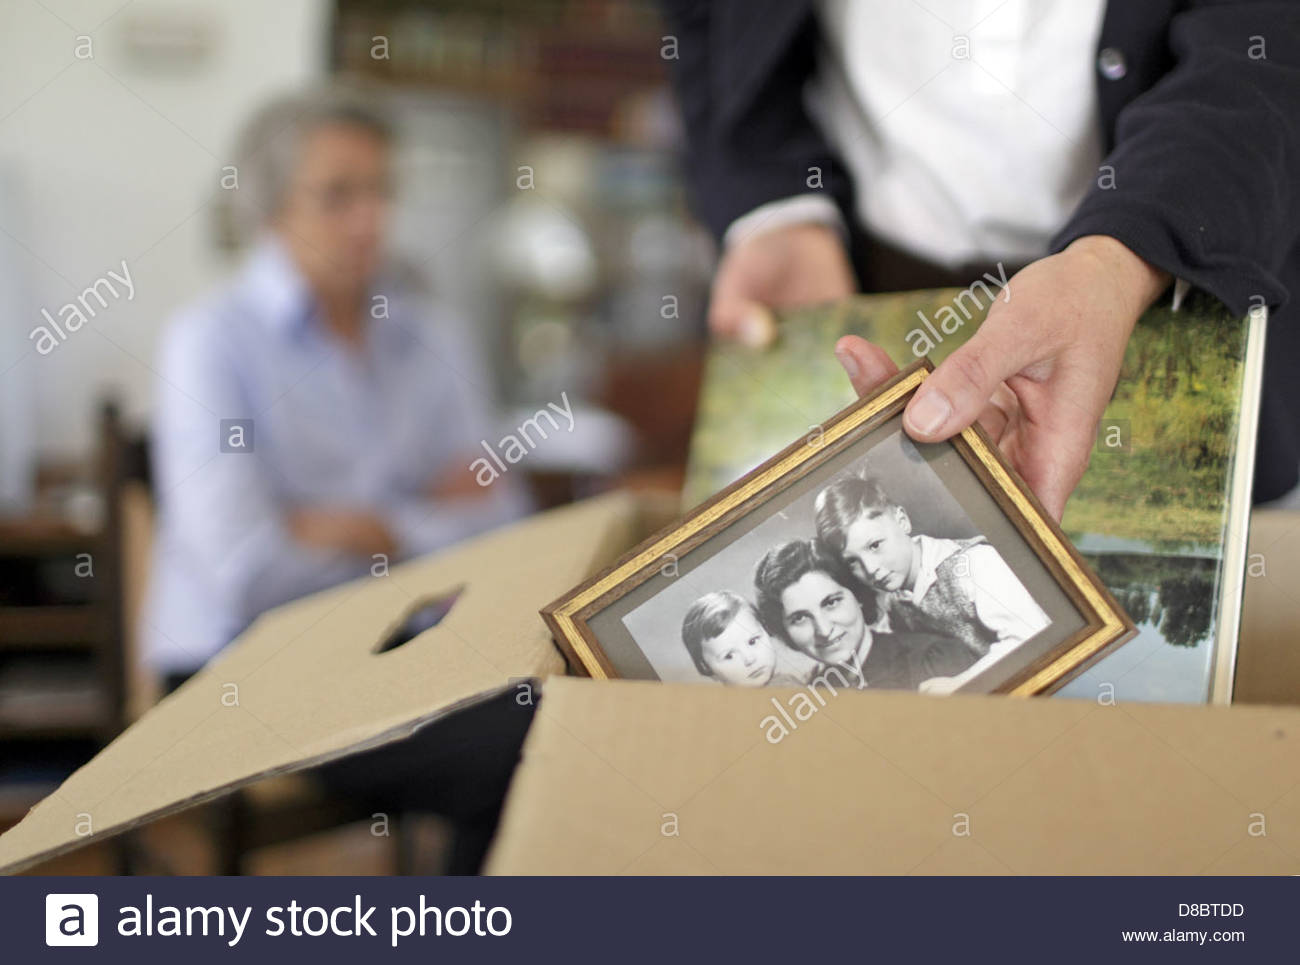 Woman packing picture frame in a cardboard box for her mother - Stock Image